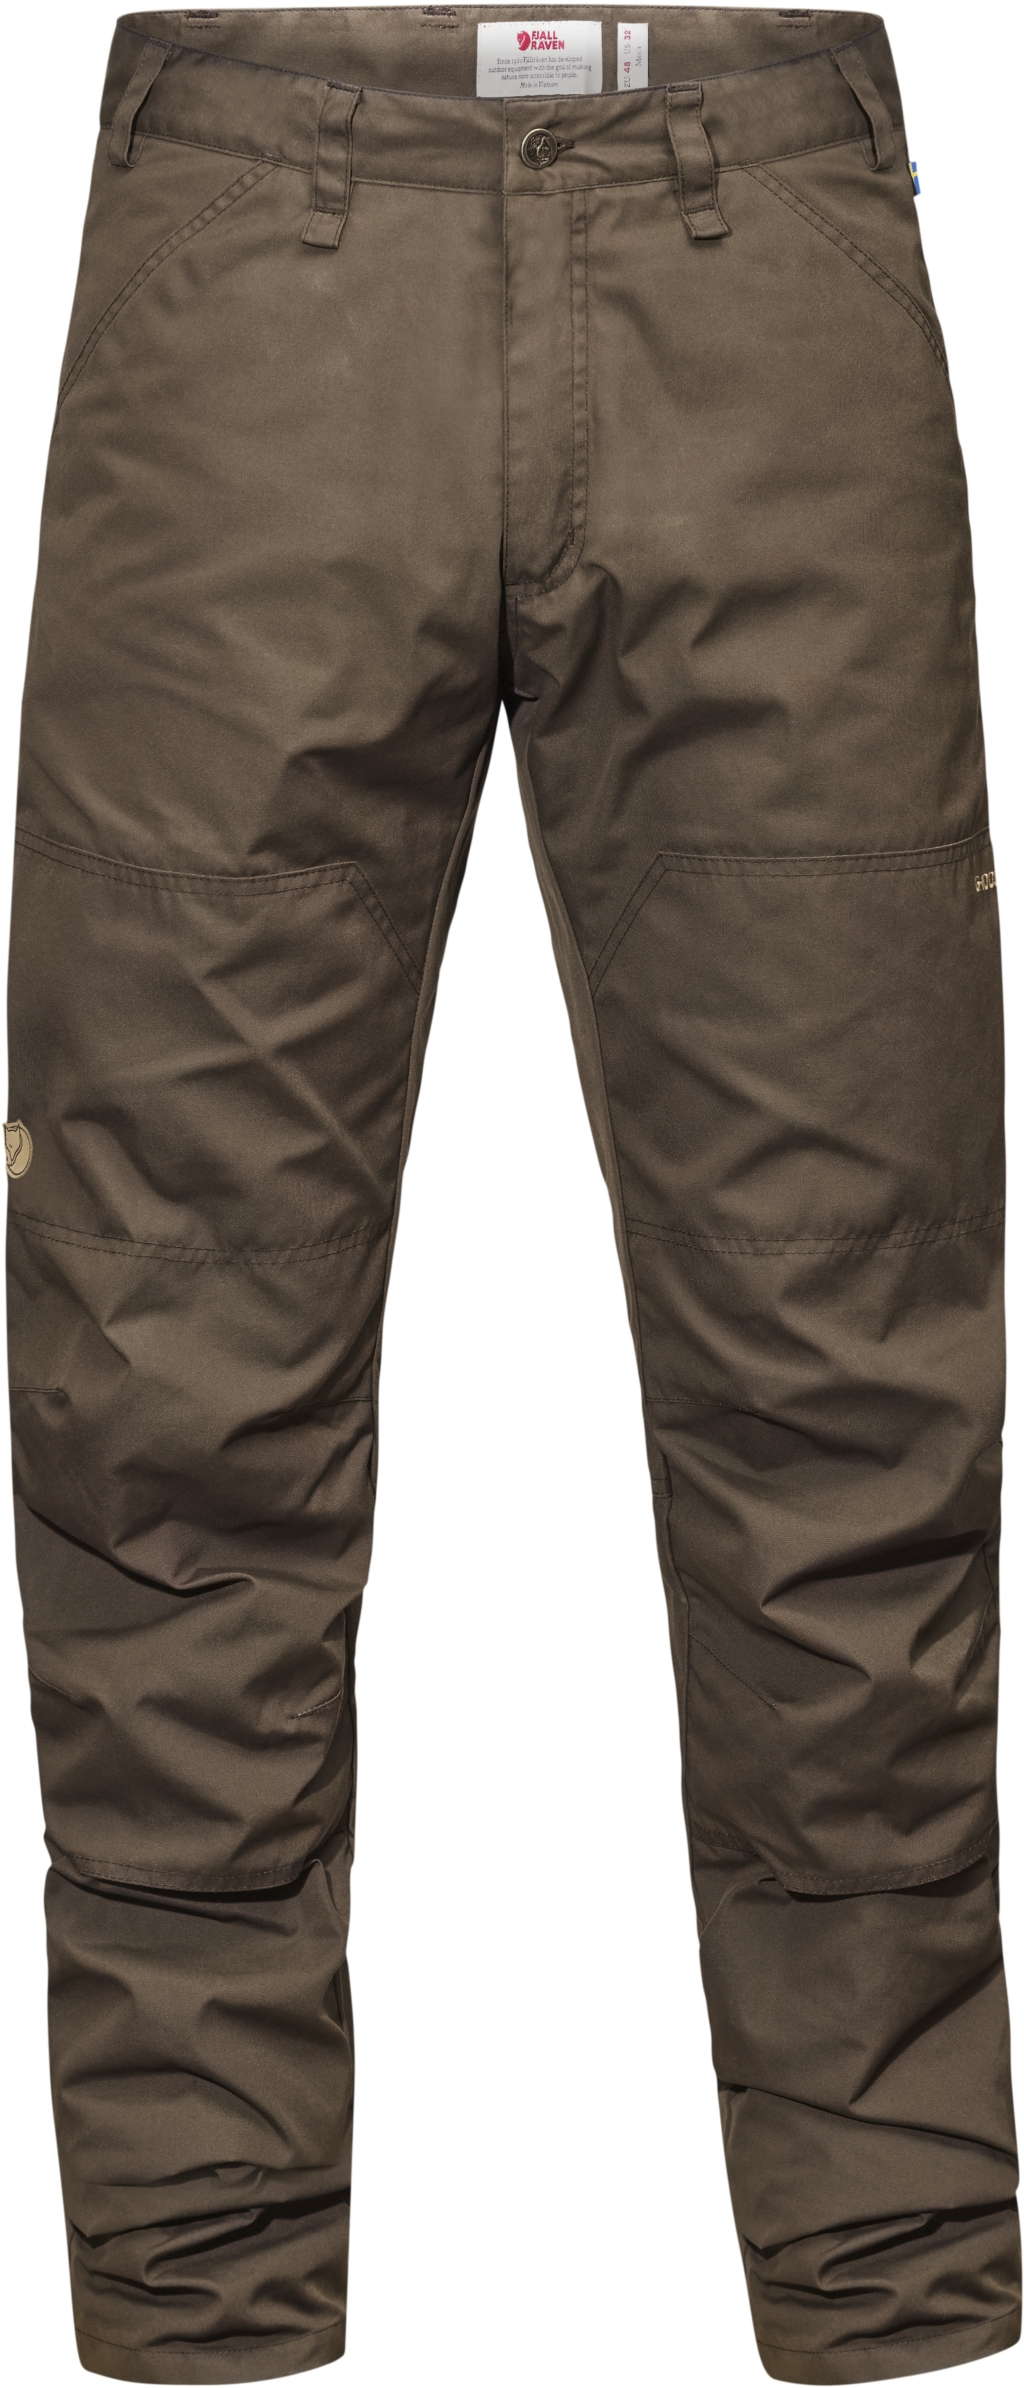 FjallRaven Barents Pro Winter Jeans Dark Olive-30